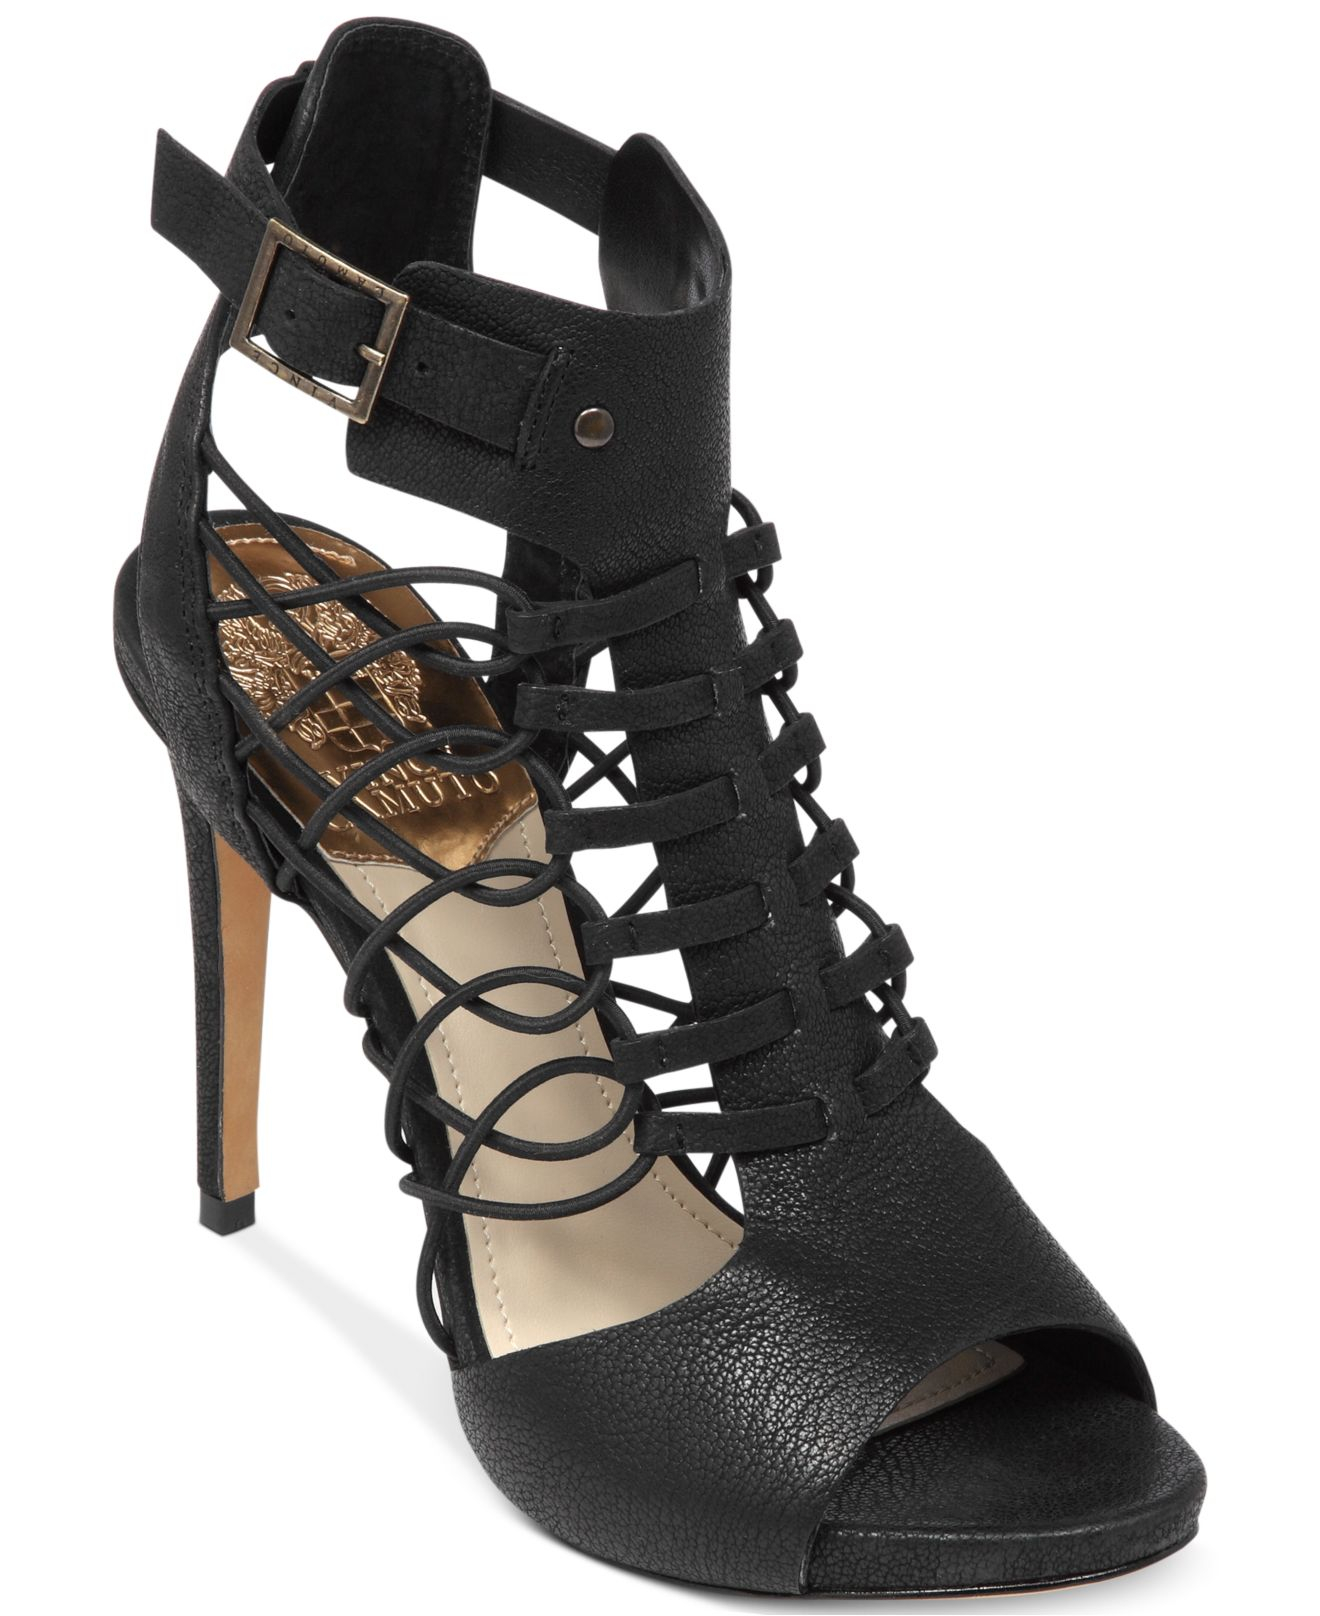 Vince Camuto Fossel Gladiator Sandals In Black Lyst